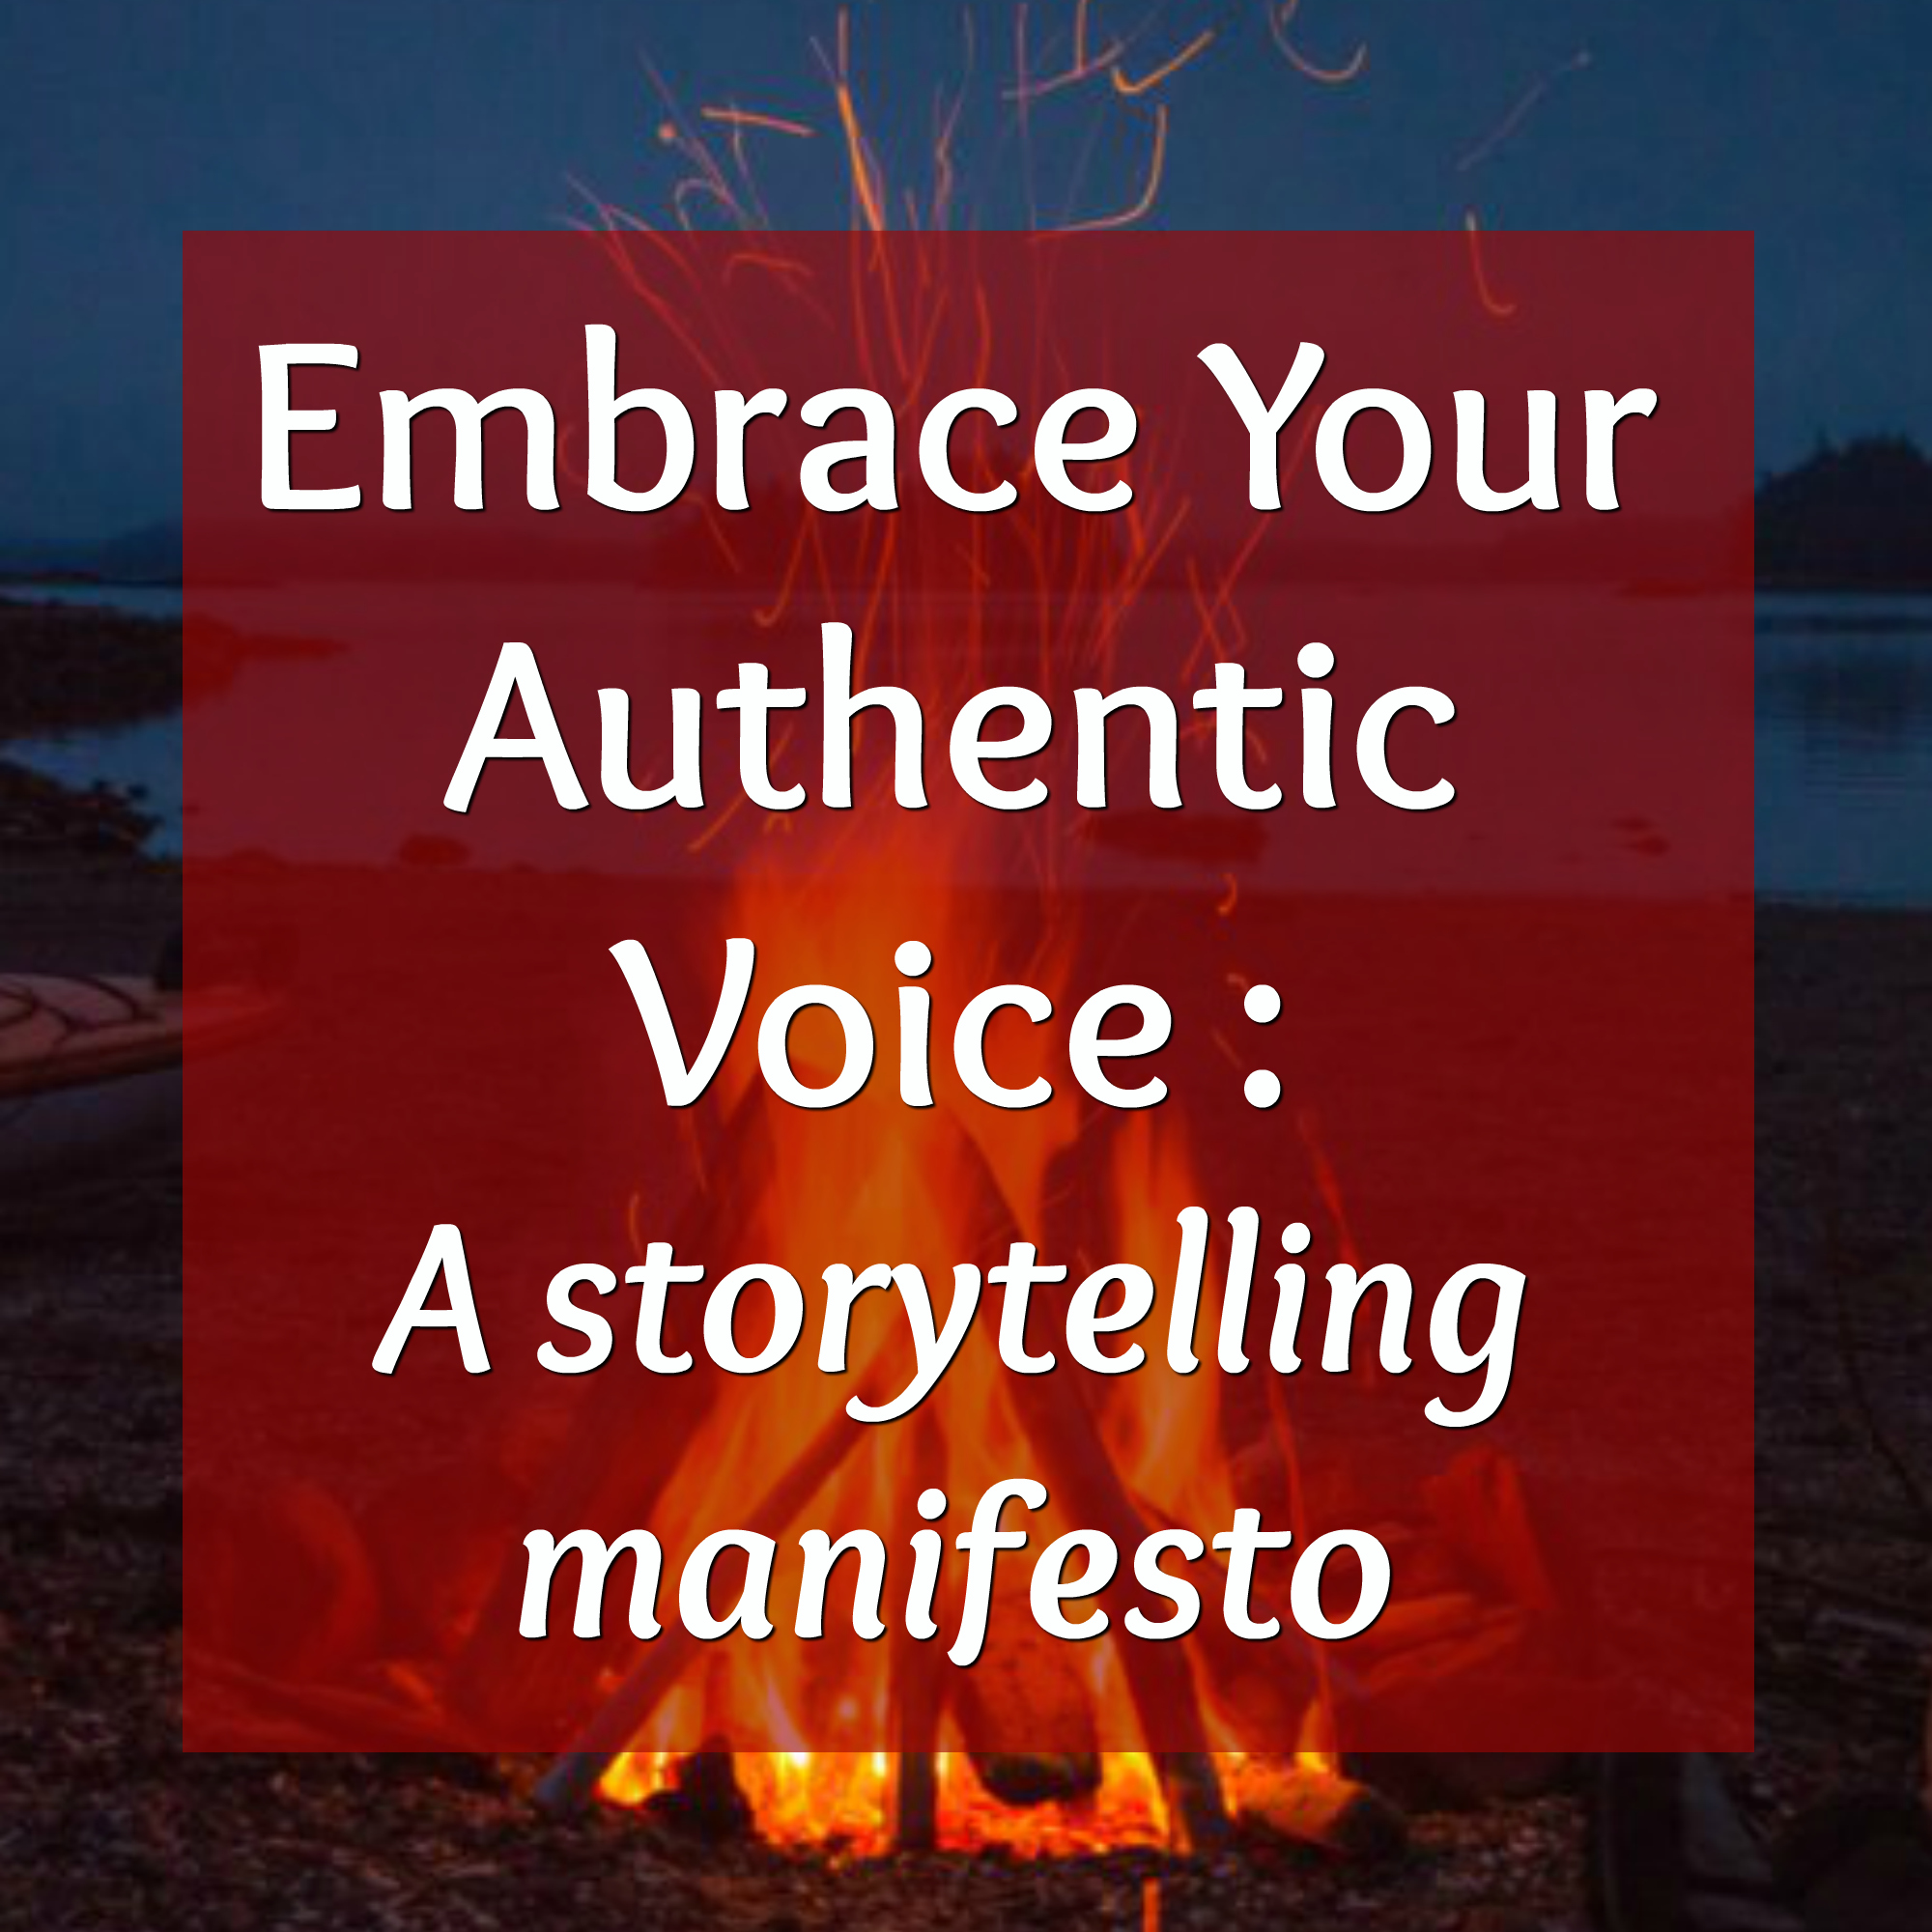 Embrace Your Authentic Voice